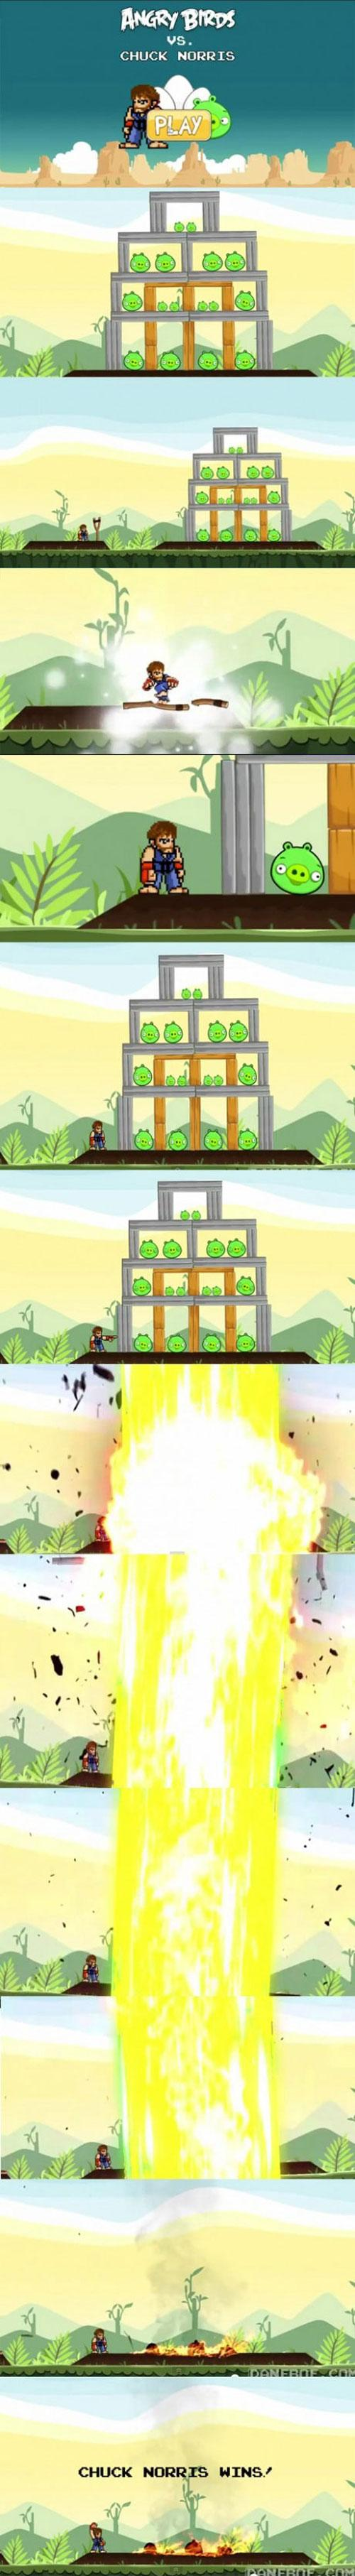 angry birds vs chuck norris